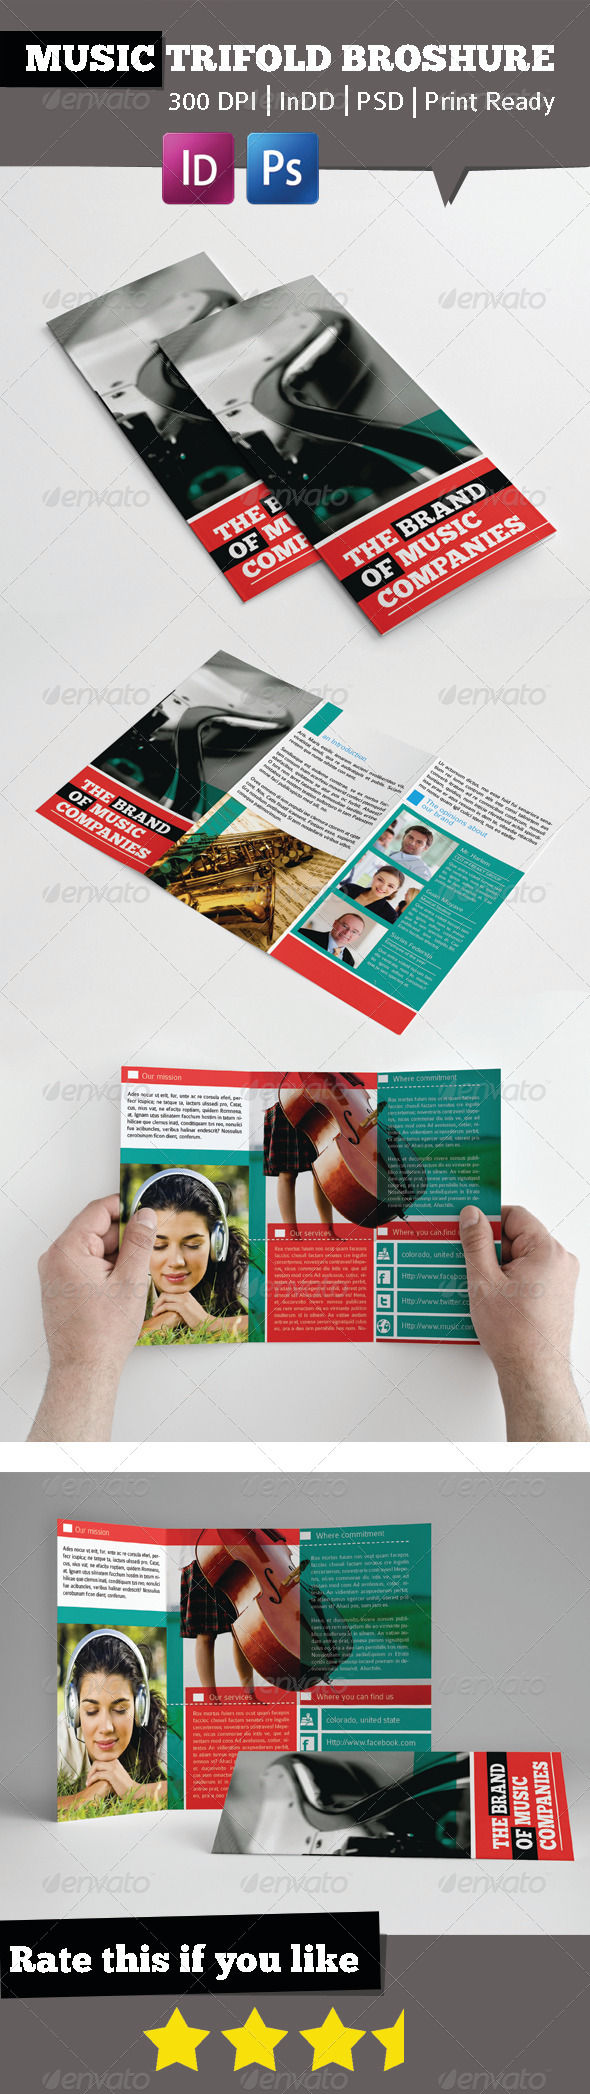 Music Brand Trifold Broshure - Brochures Print Templates